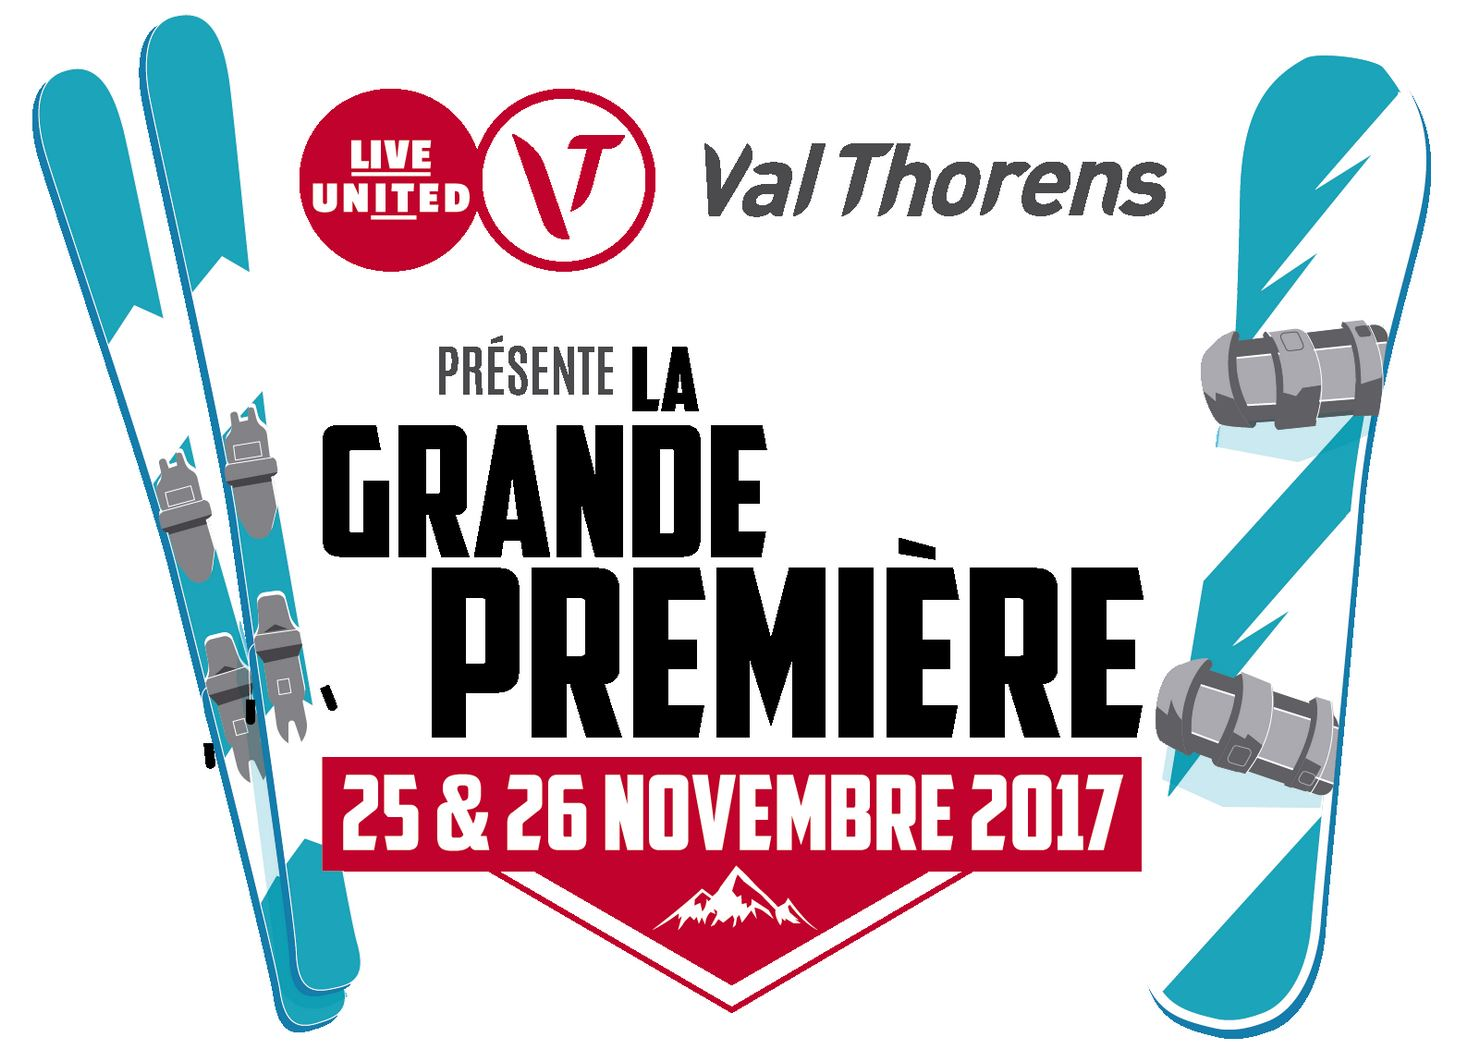 WEEKEND LA GRANDE PREMIERE - FROM 24/11/17 TO 26/11/17 - STUDIO AND APARTMENT